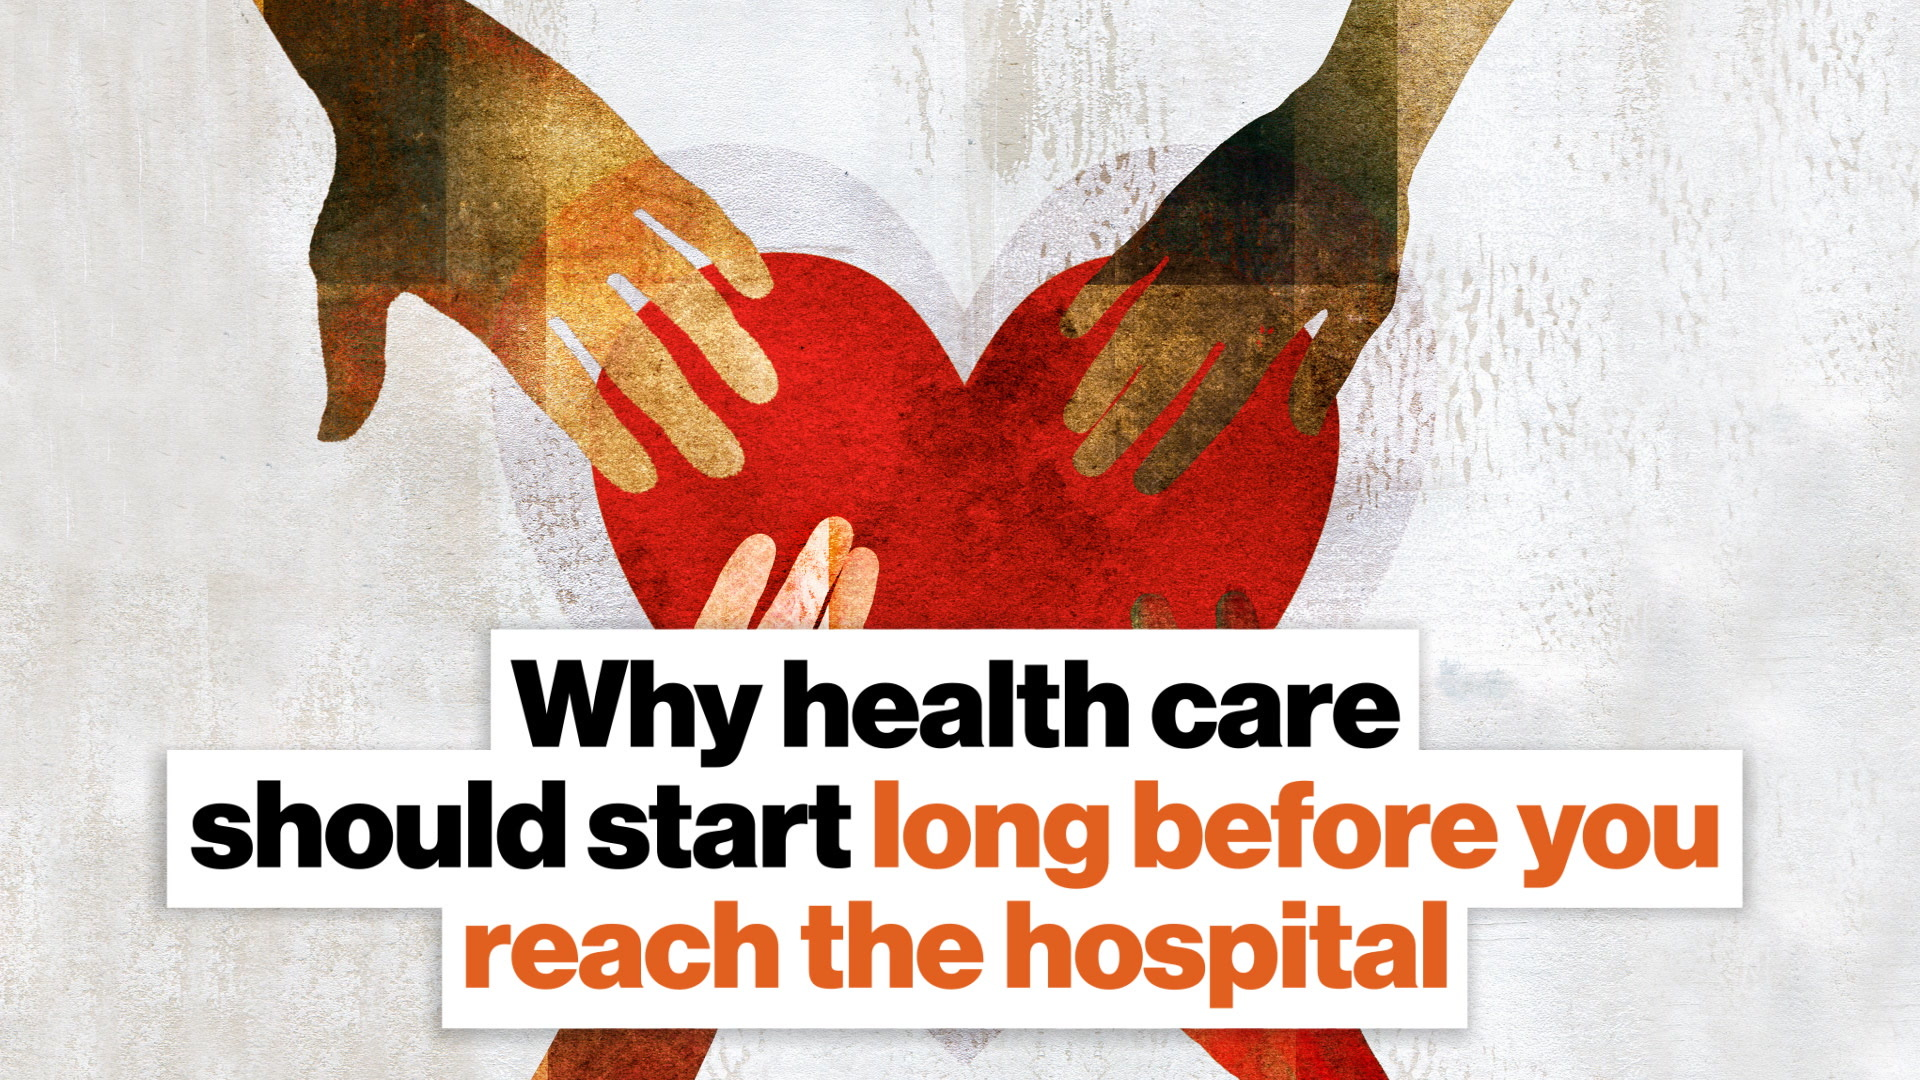 Why health care should start long before you reach the hospital